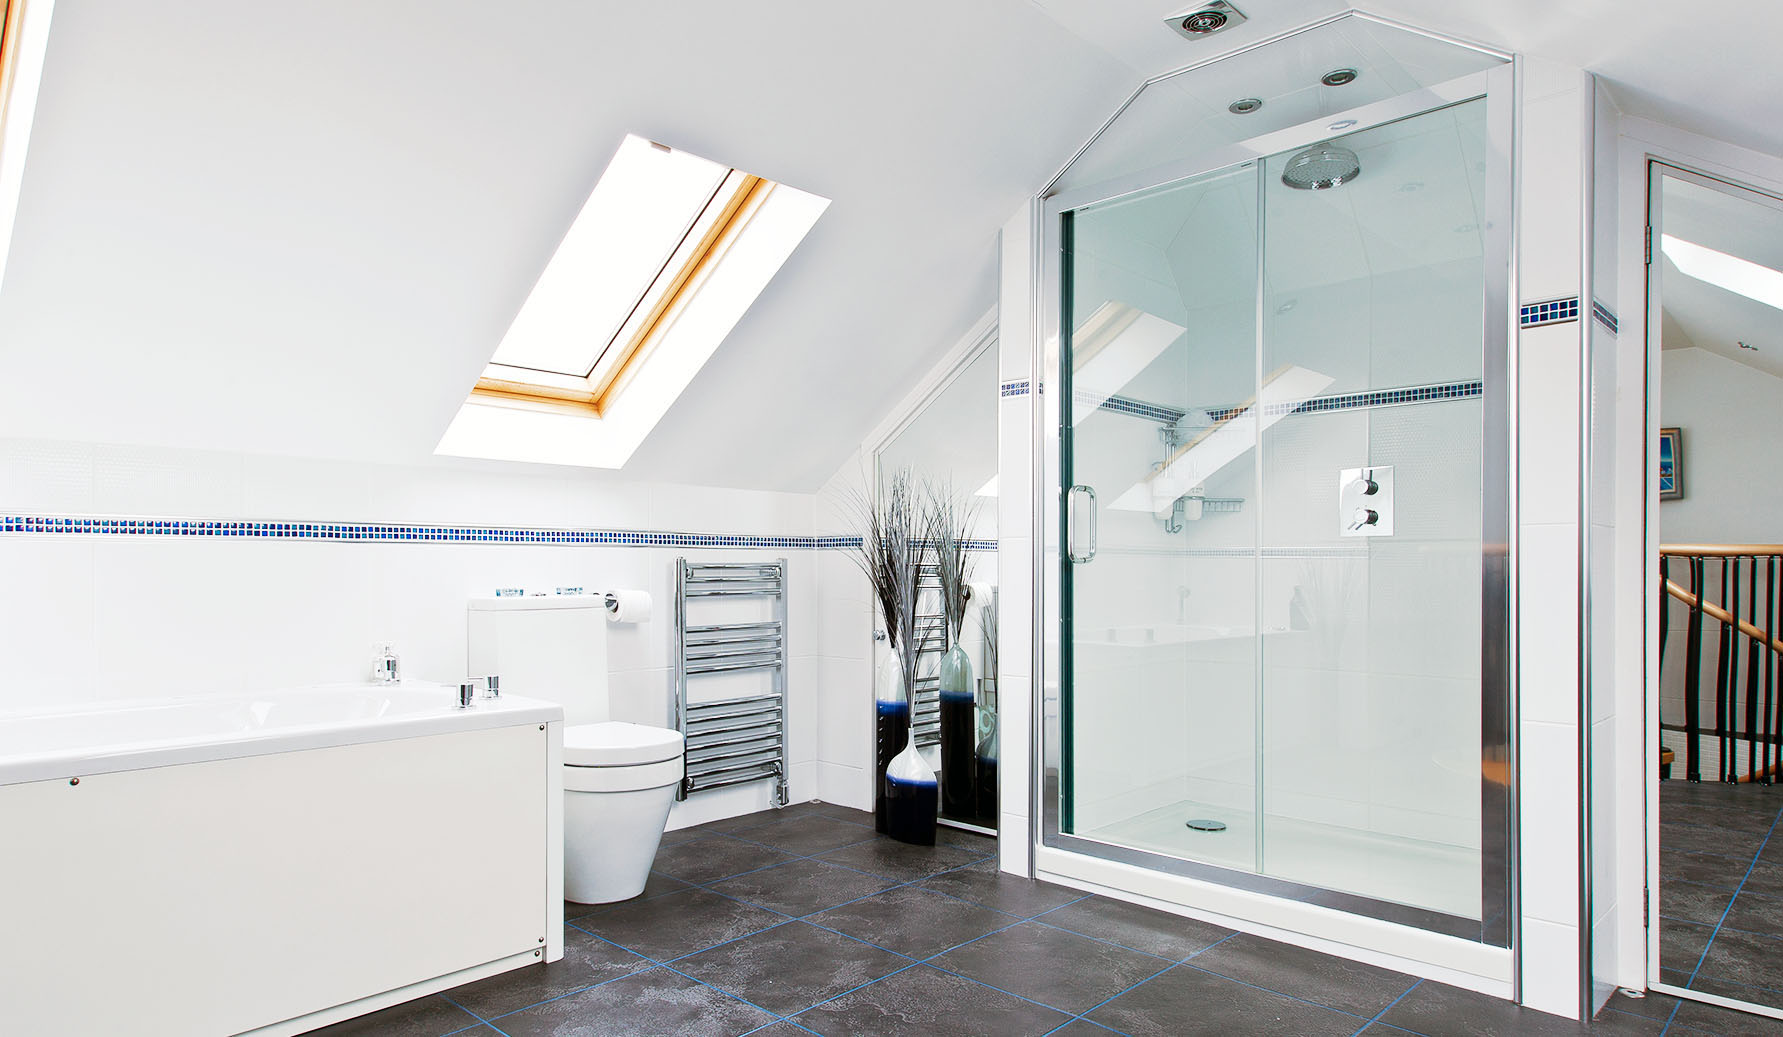 Bathroom designers perth - R Doig Specialists In Bathroom Fitting Bathroom Design In Perth Scotland